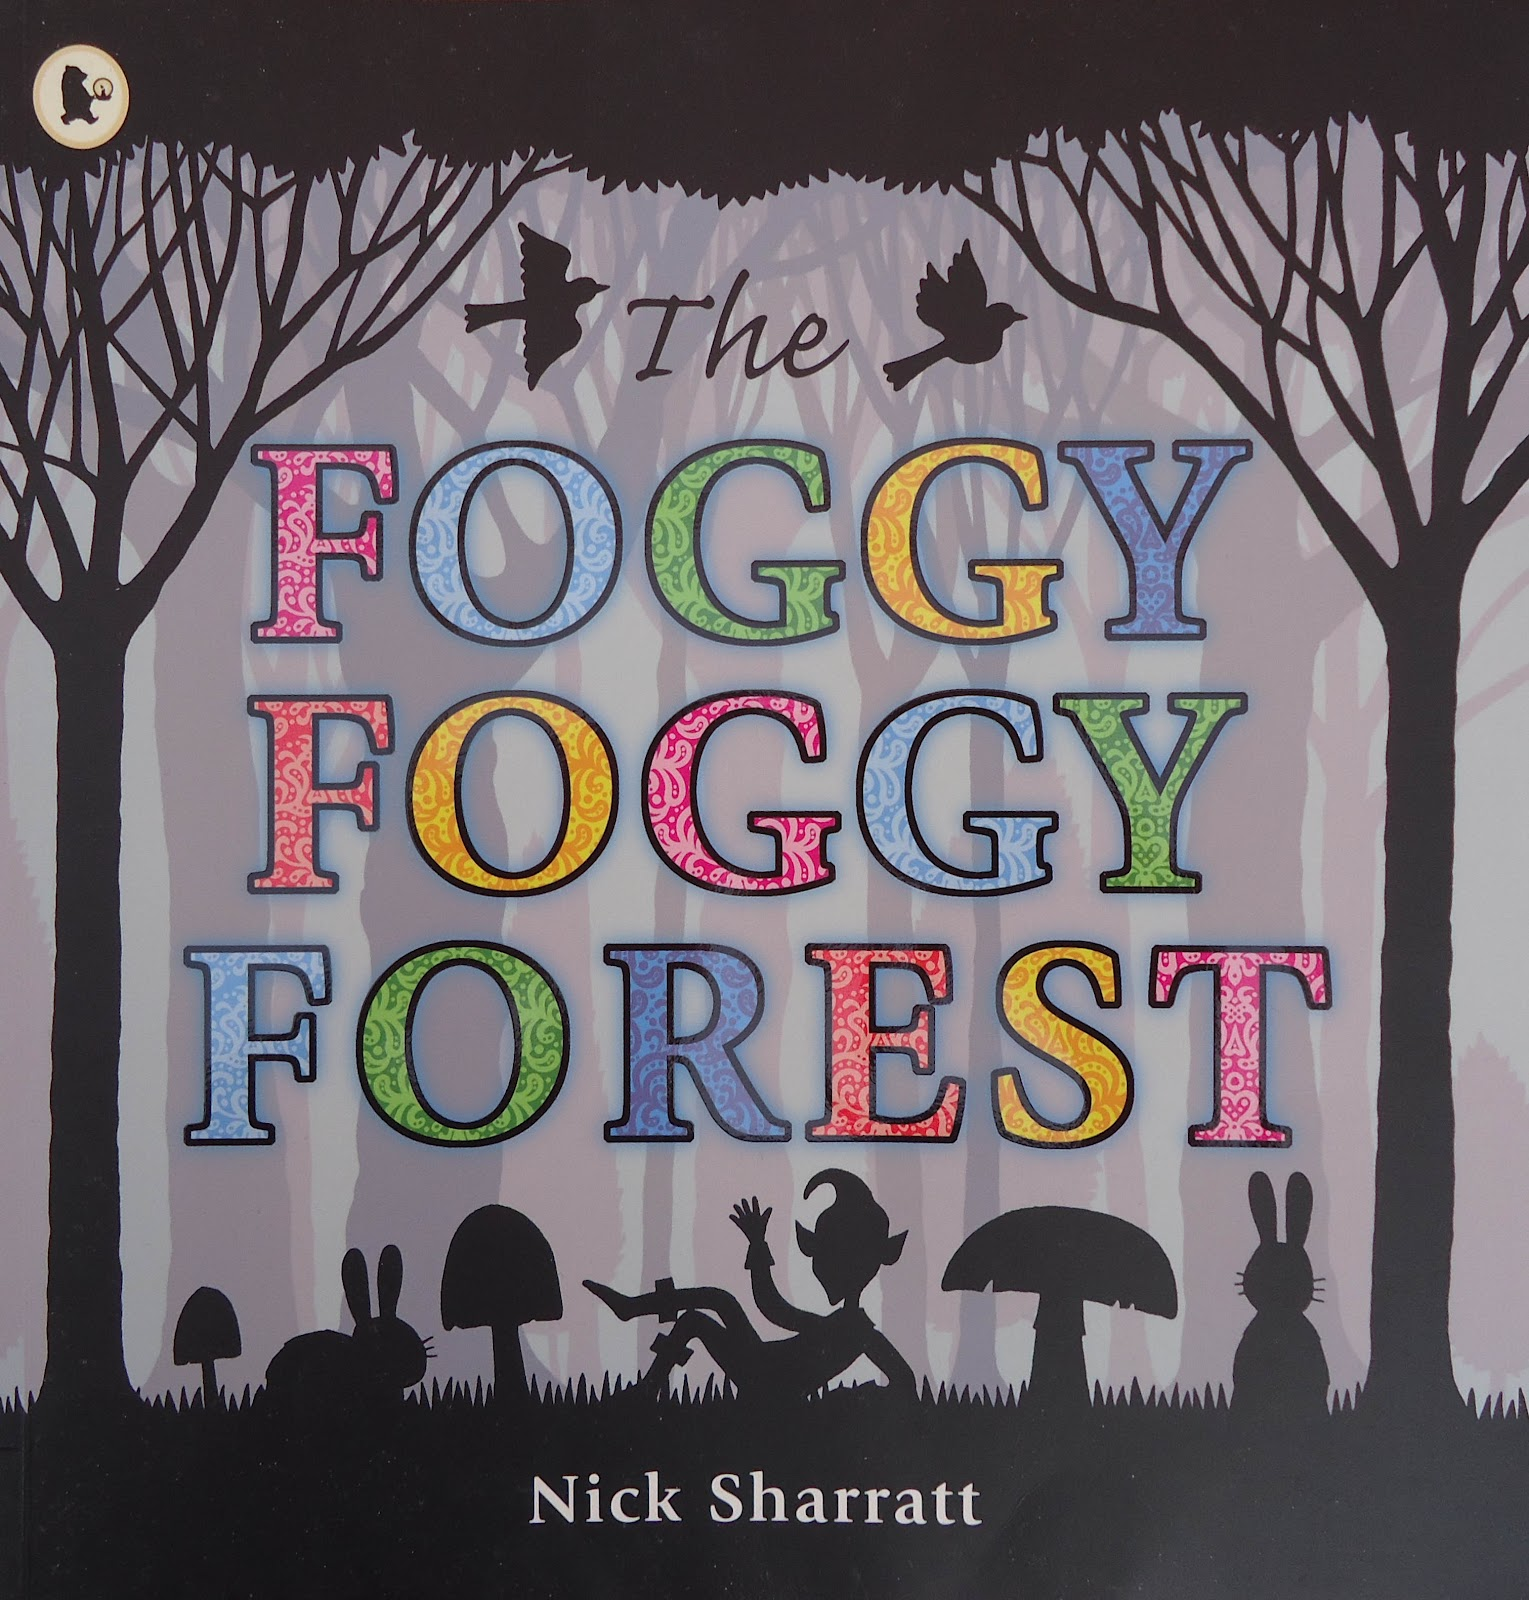 Foggy, Foggy Forest Nick Sharratt